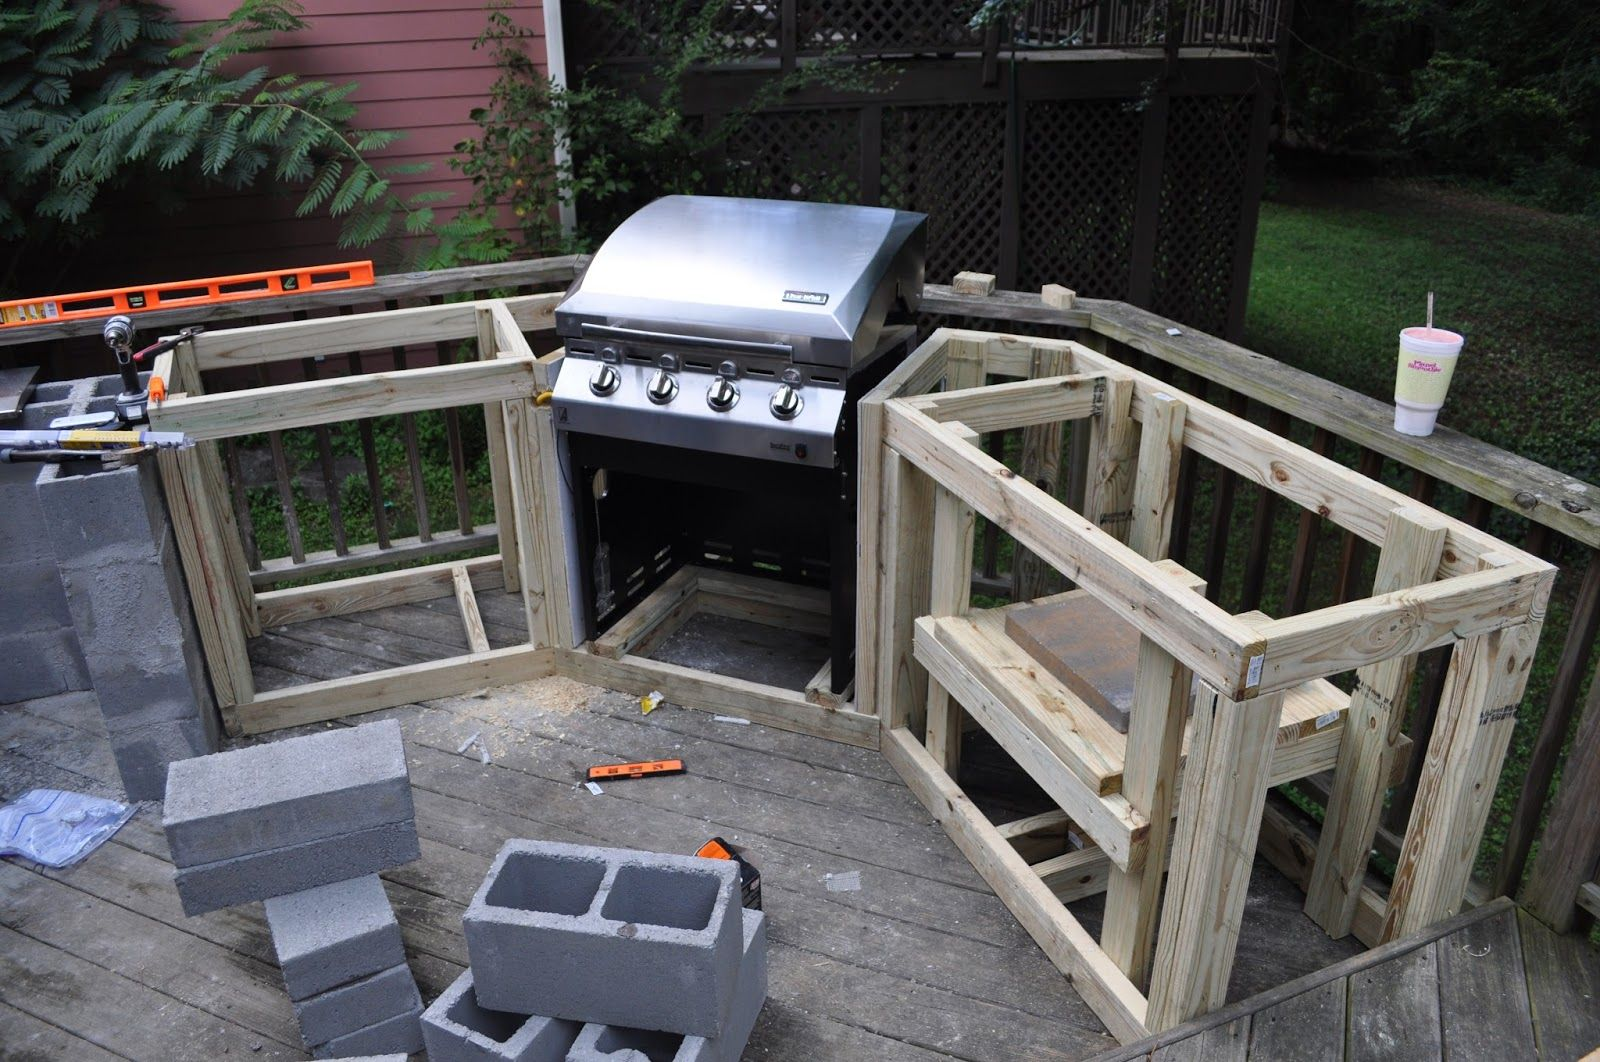 Project Outside Kitchen Began Two Weekends Ago Well To Be Fair Project Outside Kitchen Began Outdoor Kitchen Plans Outdoor Kitchen Grill Diy Outdoor Kitchen